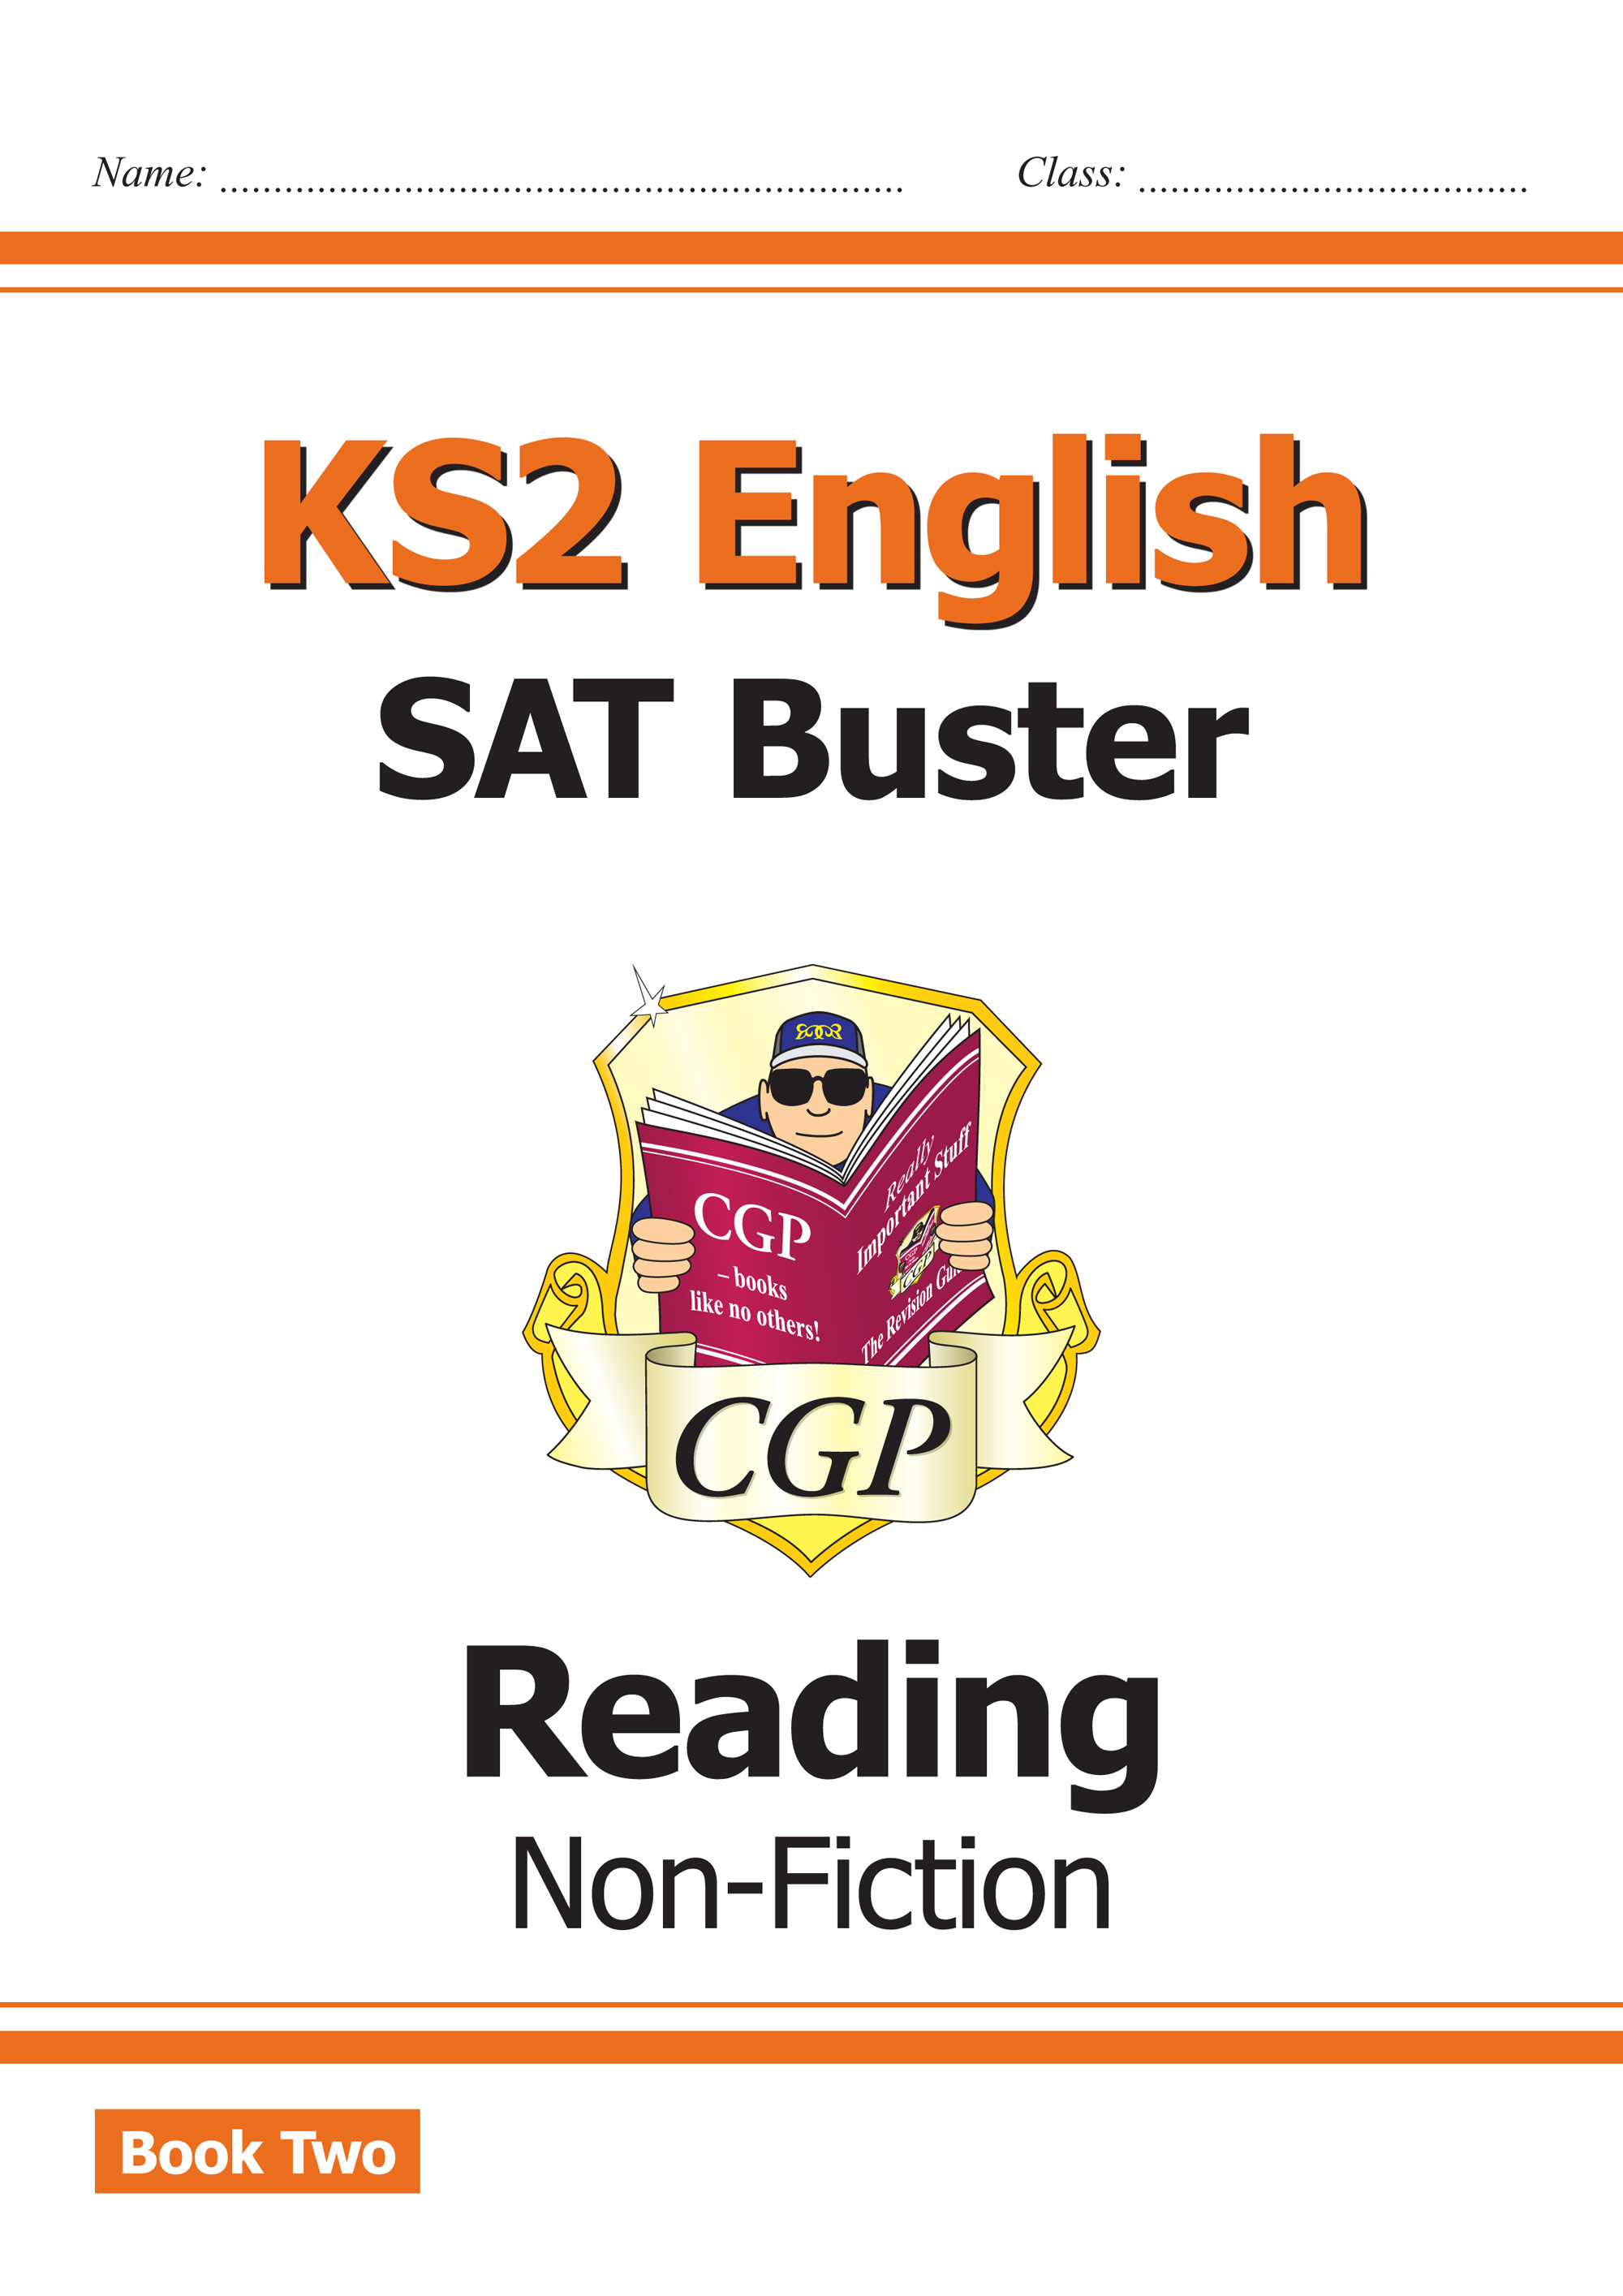 E6FRN221 - New KS2 English Reading SAT Buster: Non-Fiction Book 2 (for the 2019 tests)